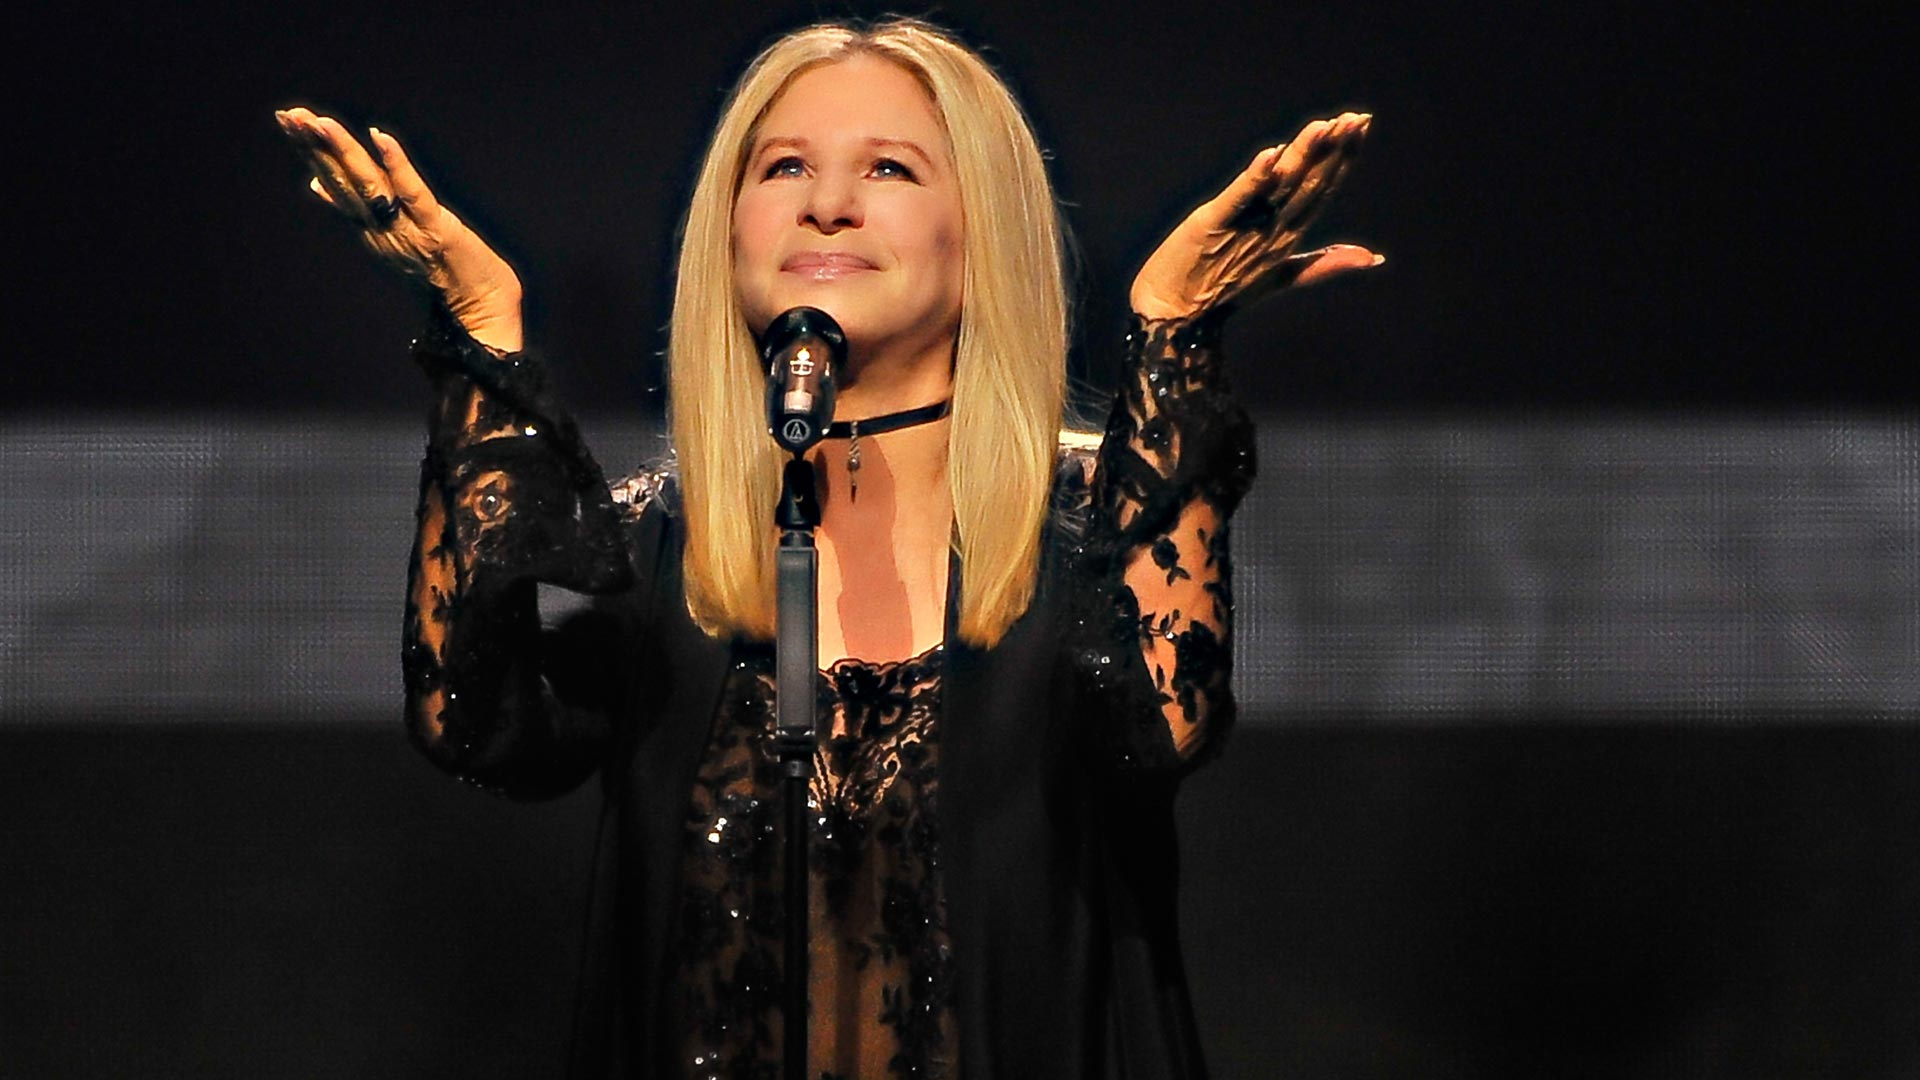 Let's Talk About Barbra Streisand for a Few Minutes, Shall